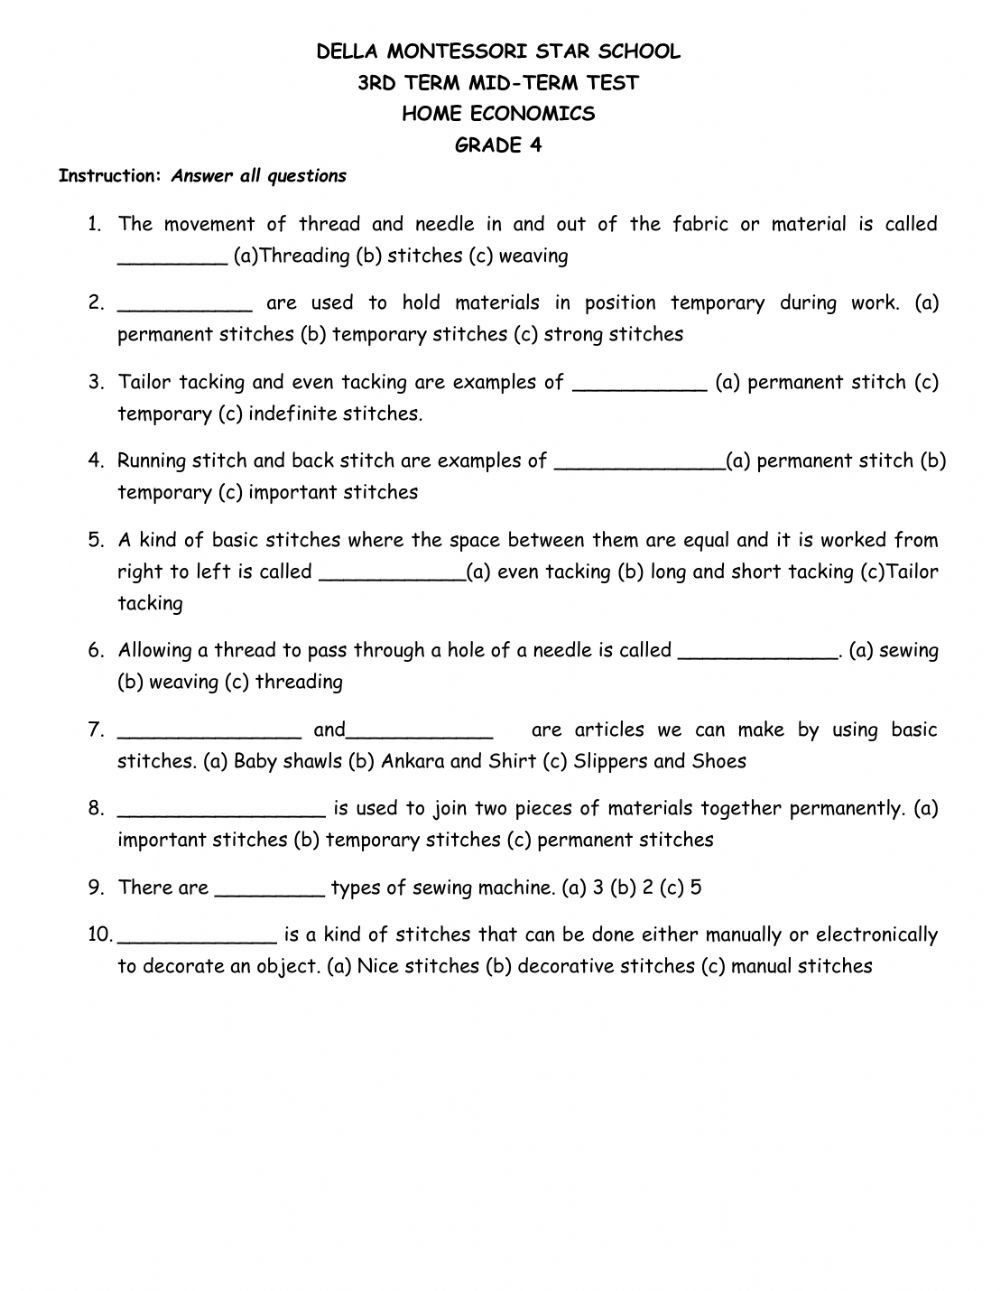 Home Economics Worksheets Grade 4 Home Economics Test Interactive Worksheet